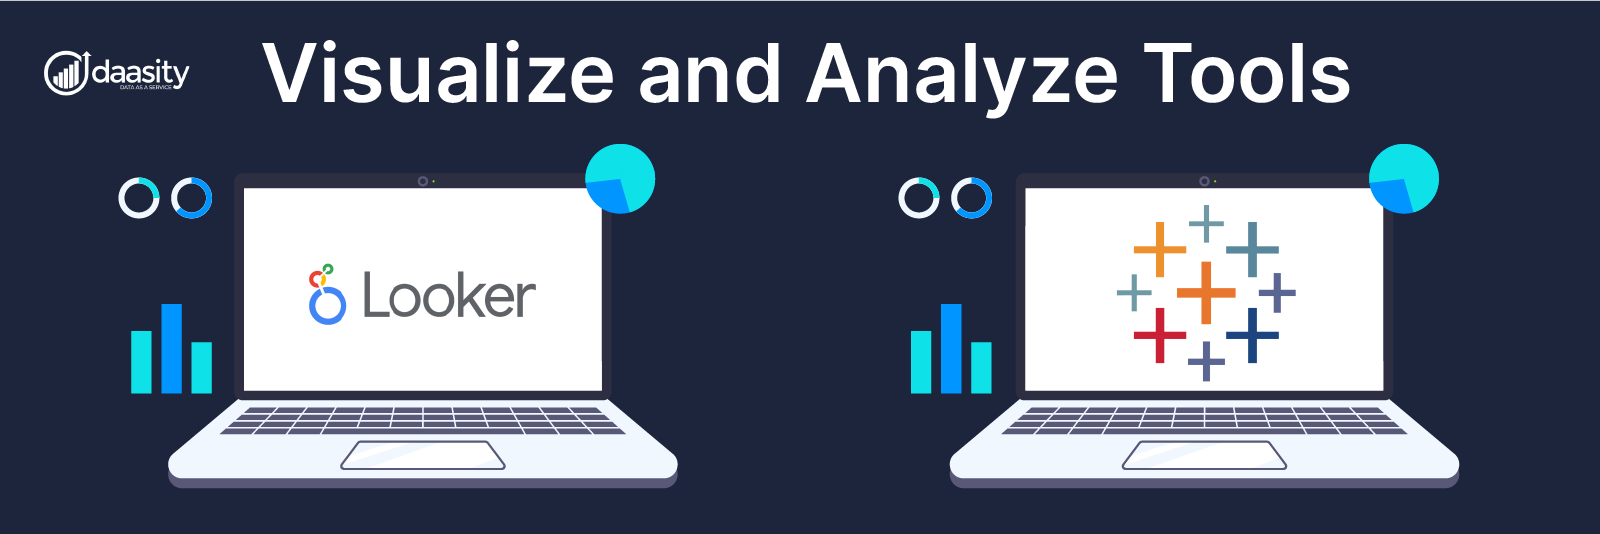 Visualize and Analyze Tools